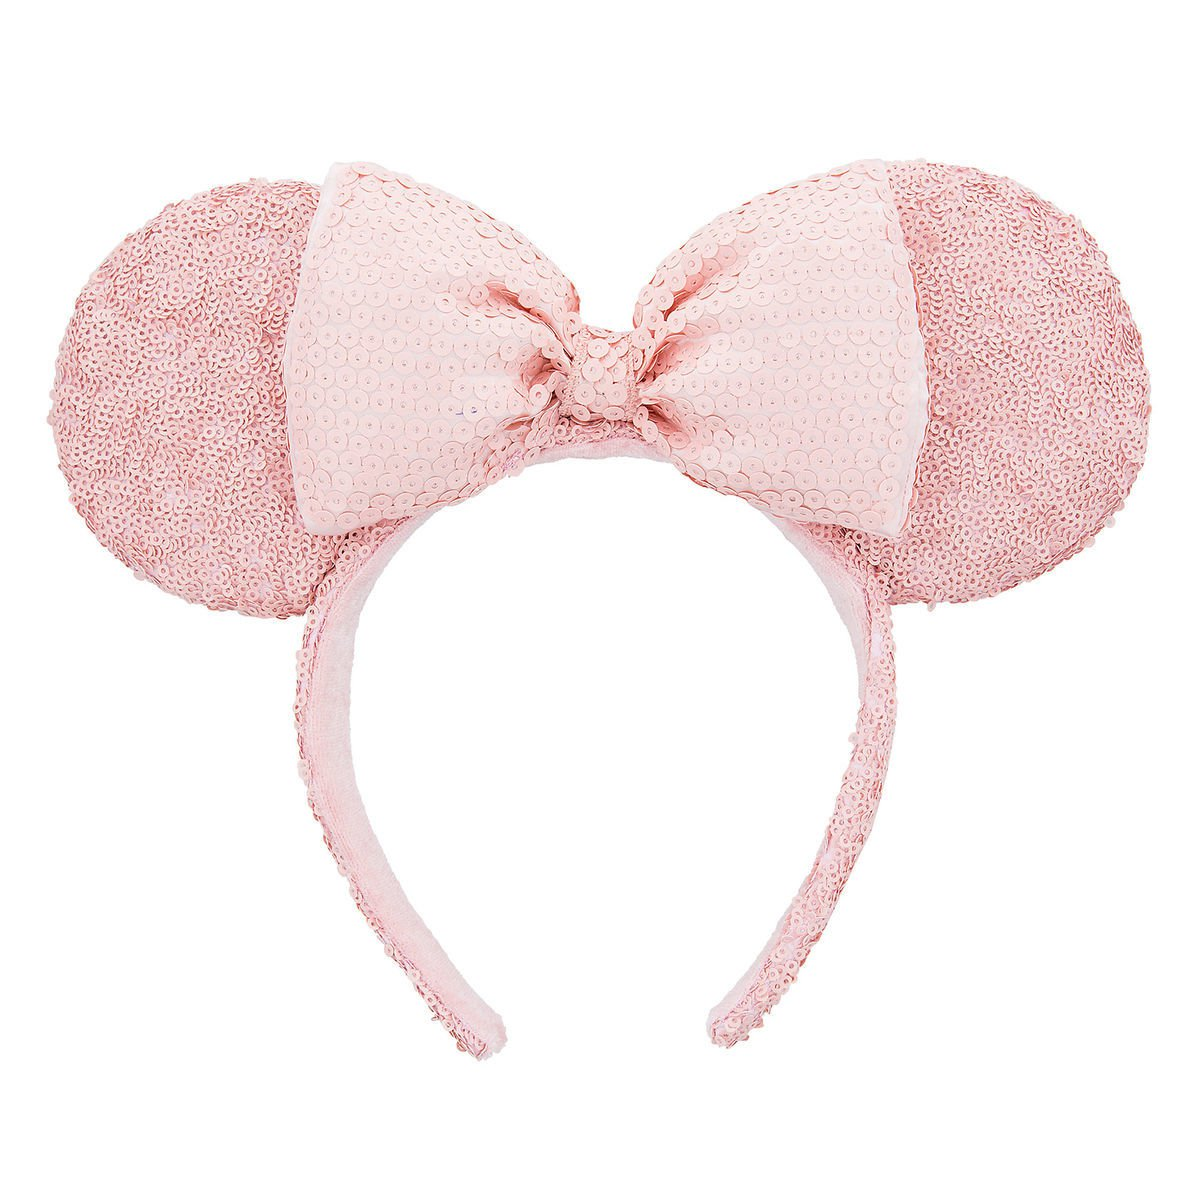 Minnie Mouse Sequined Ear Headband - Pink